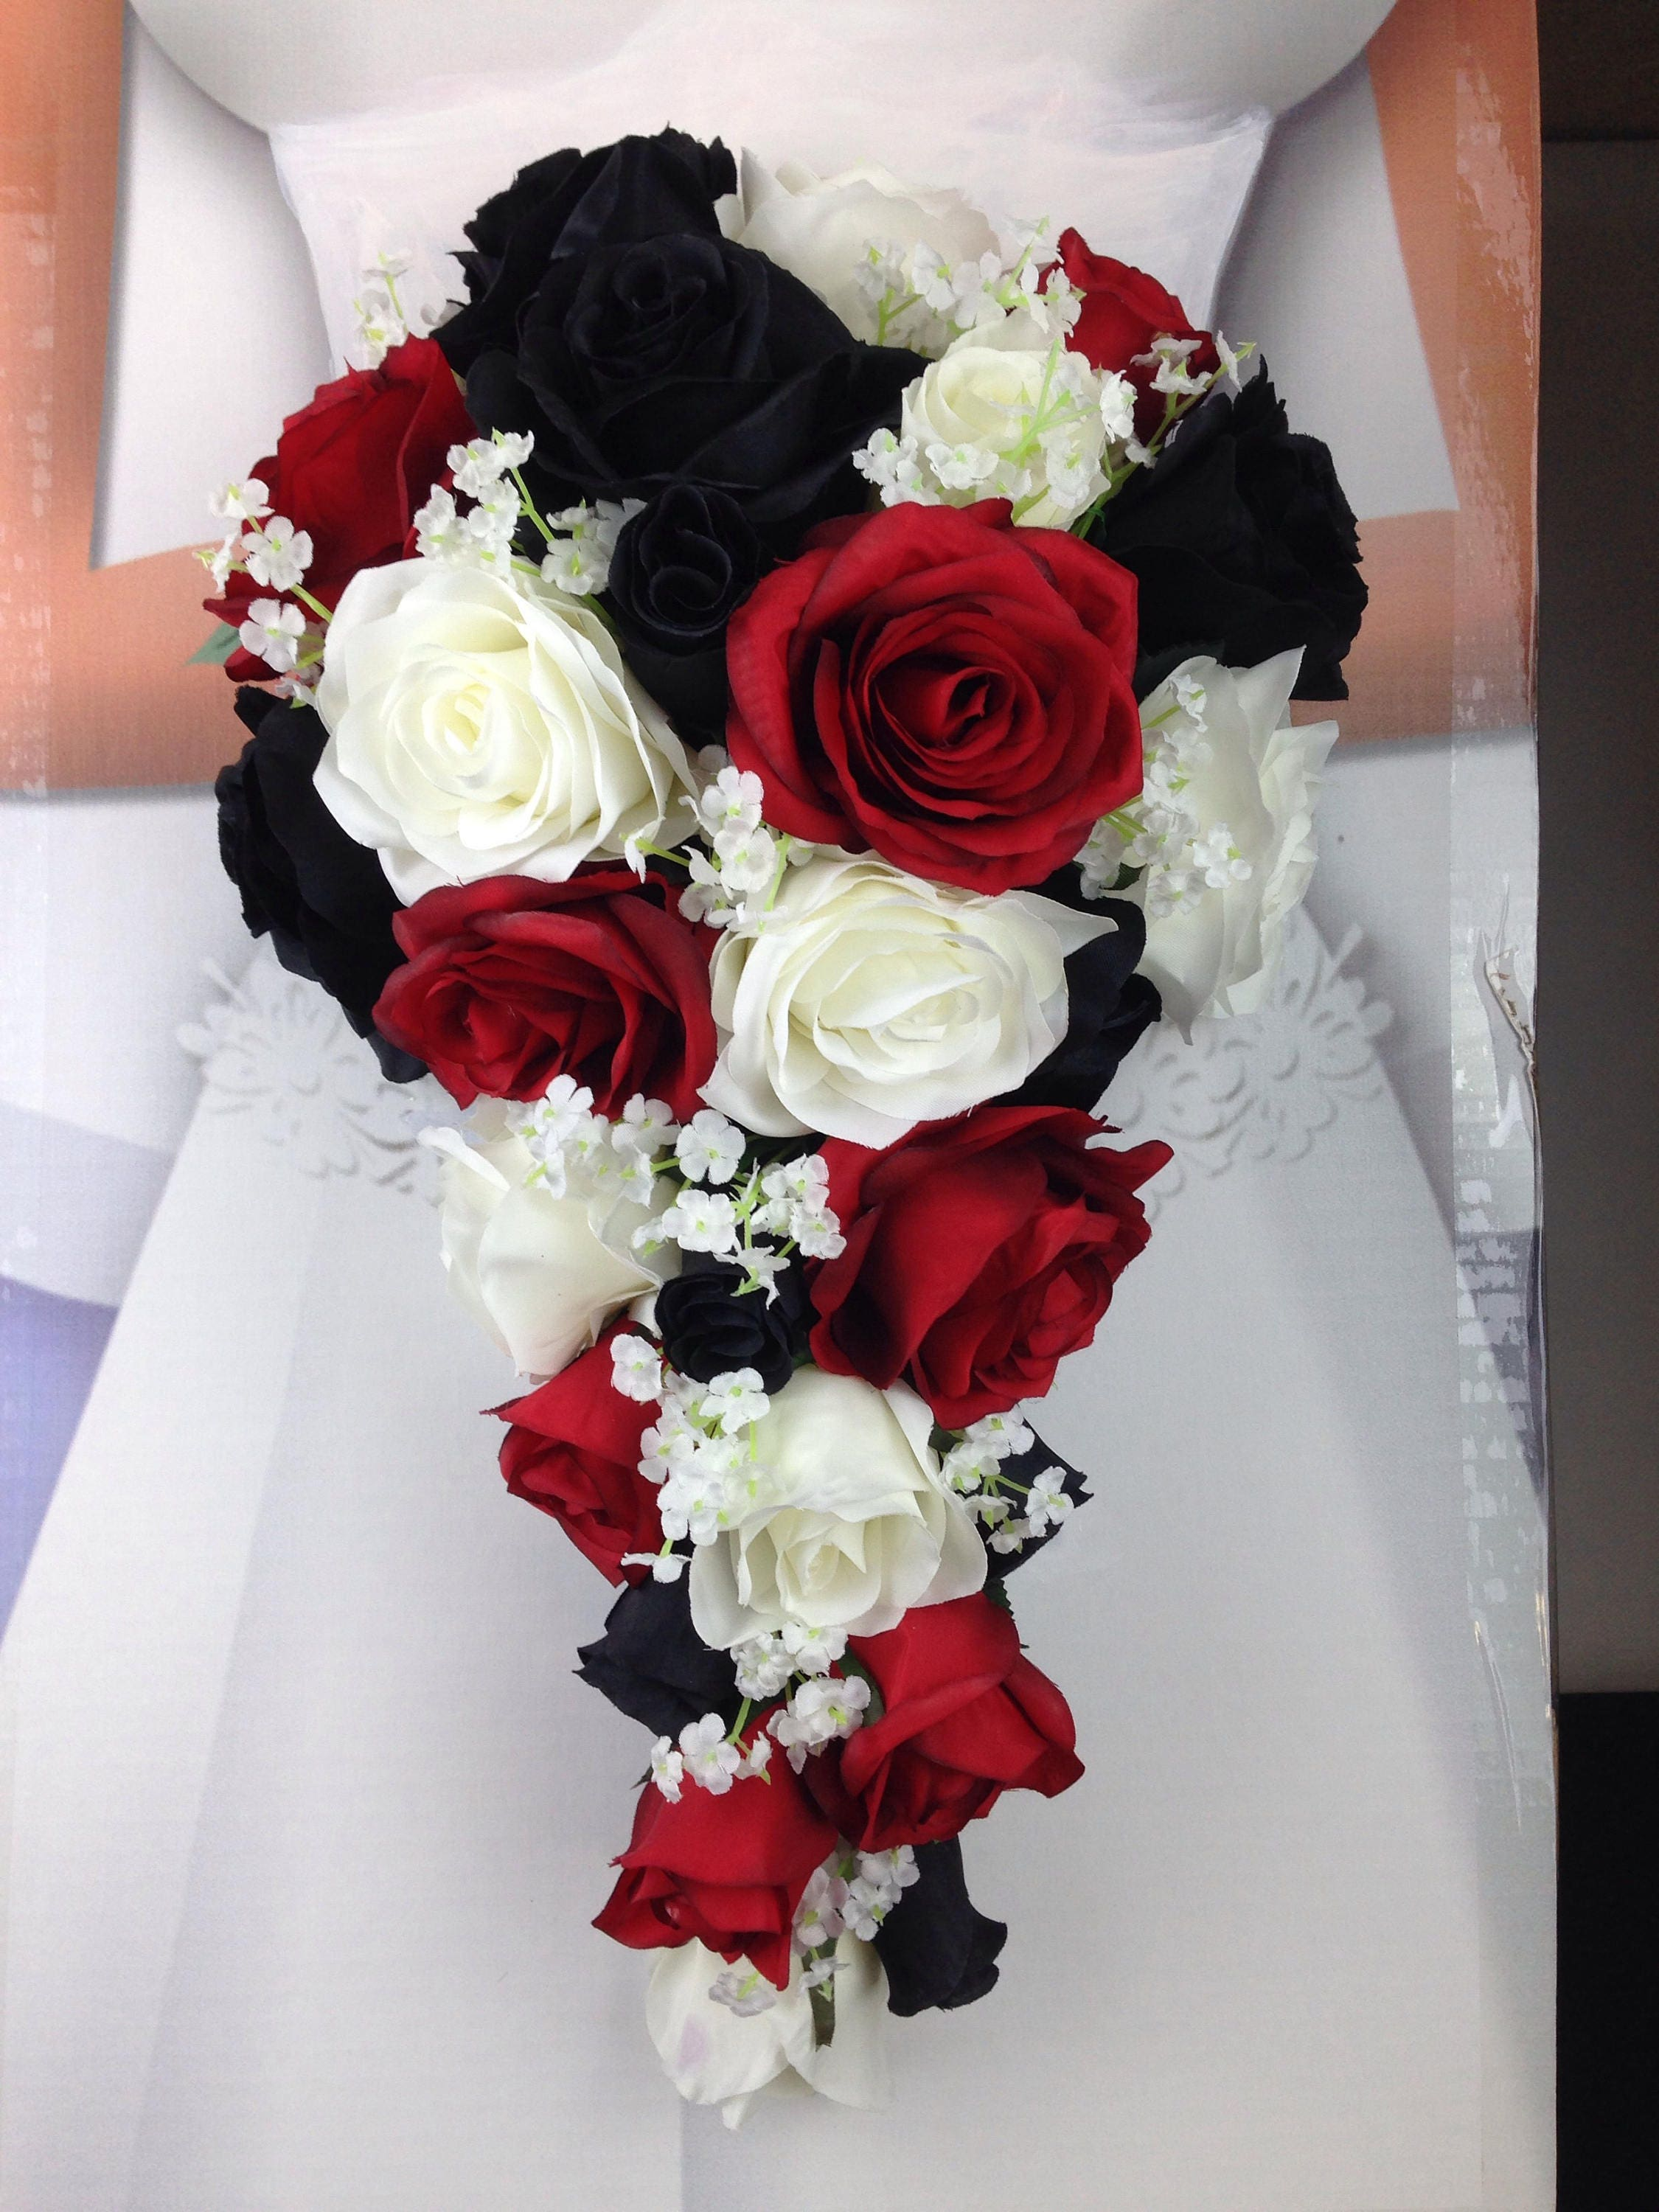 Red And White Wedding.New Artificial Black Red And White Wedding Flowers Baby S Breath Red Black And White Bridal Bouquet